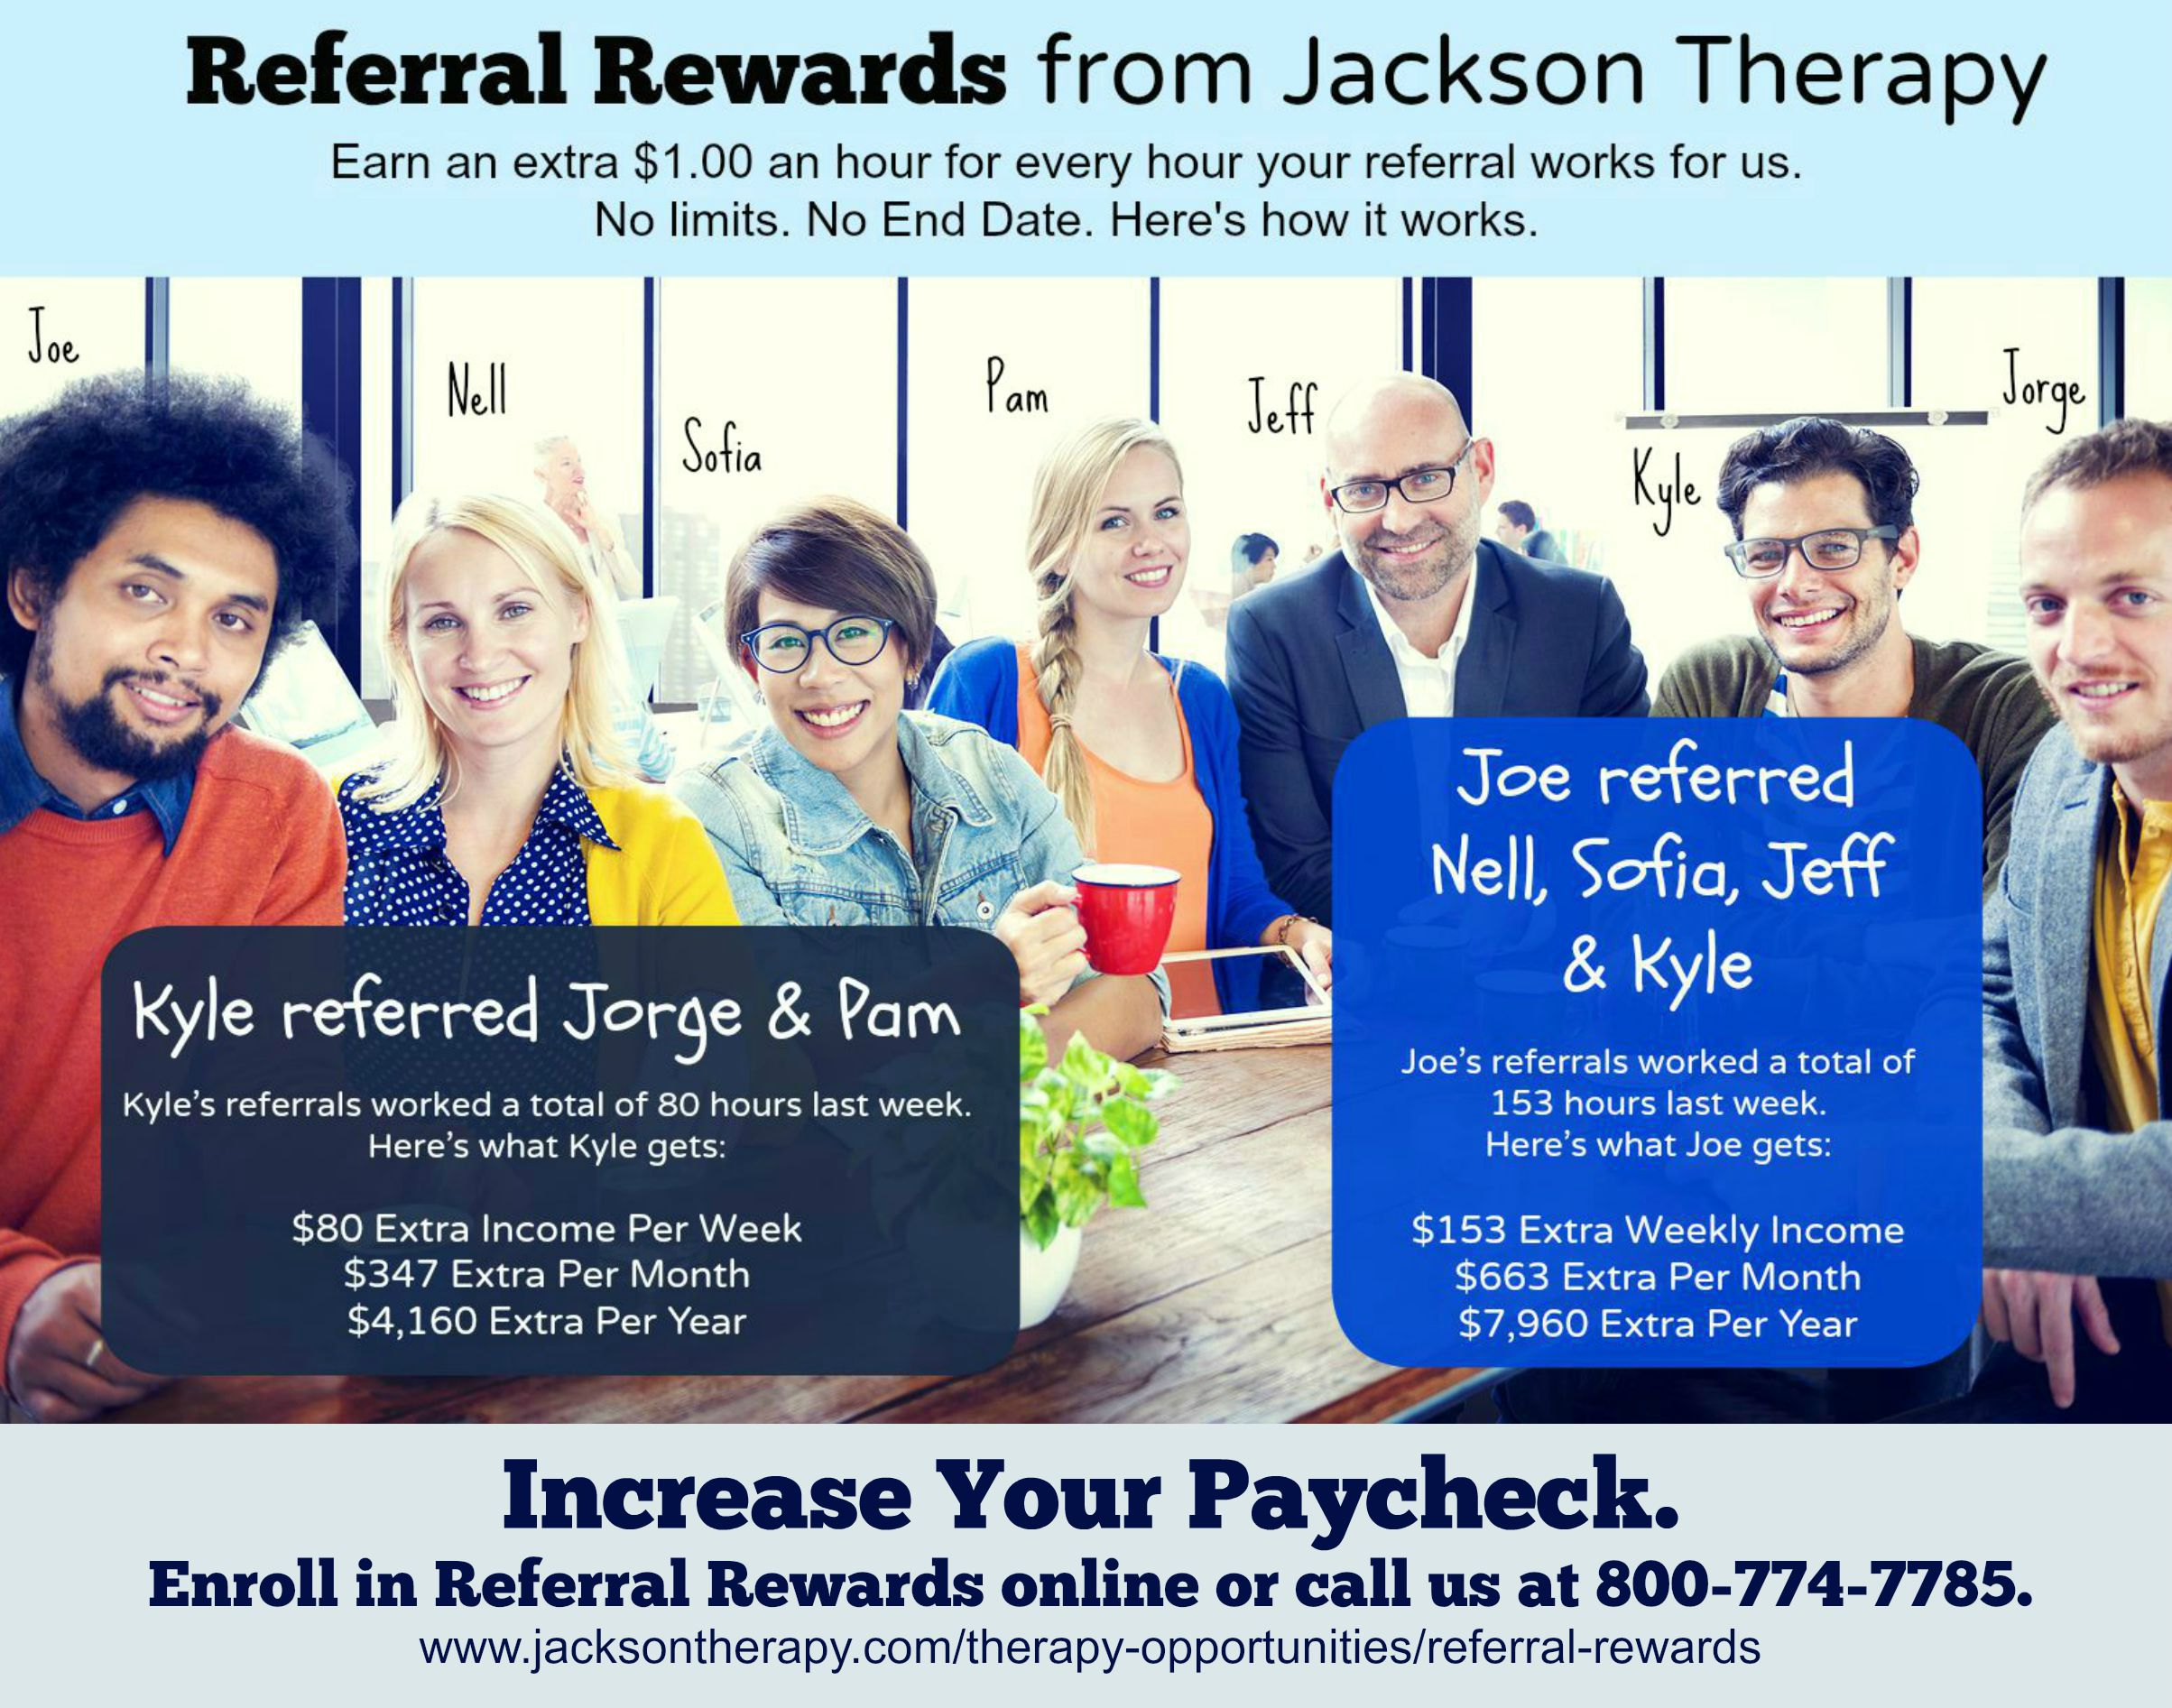 Referral_Rewards_Jackson